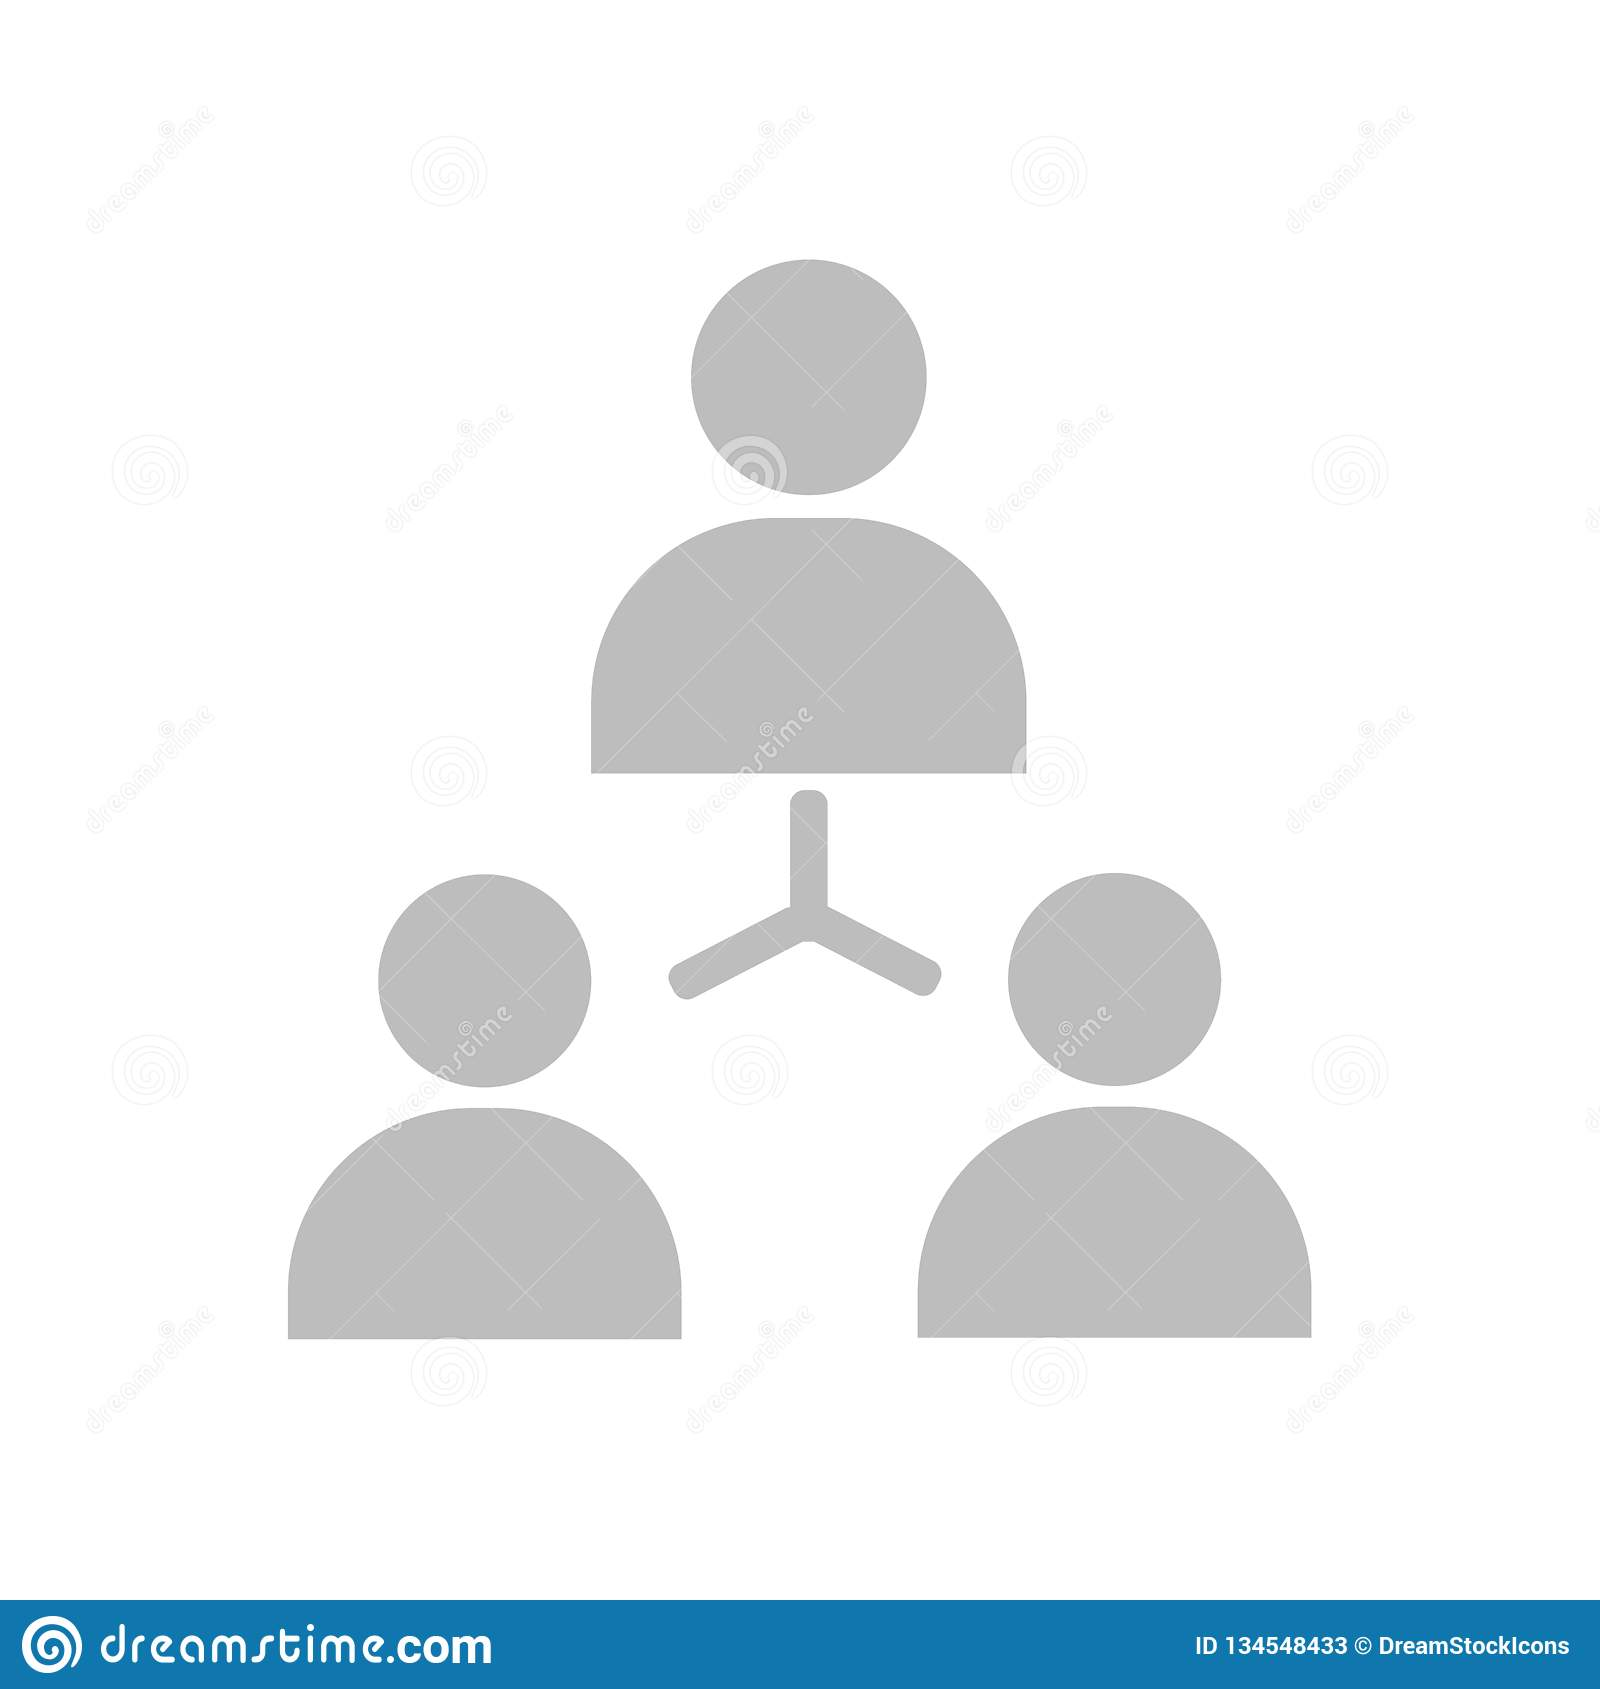 Hierarchical structure icon vector sign and symbol isolated on white background, Hierarchical structure logo concept